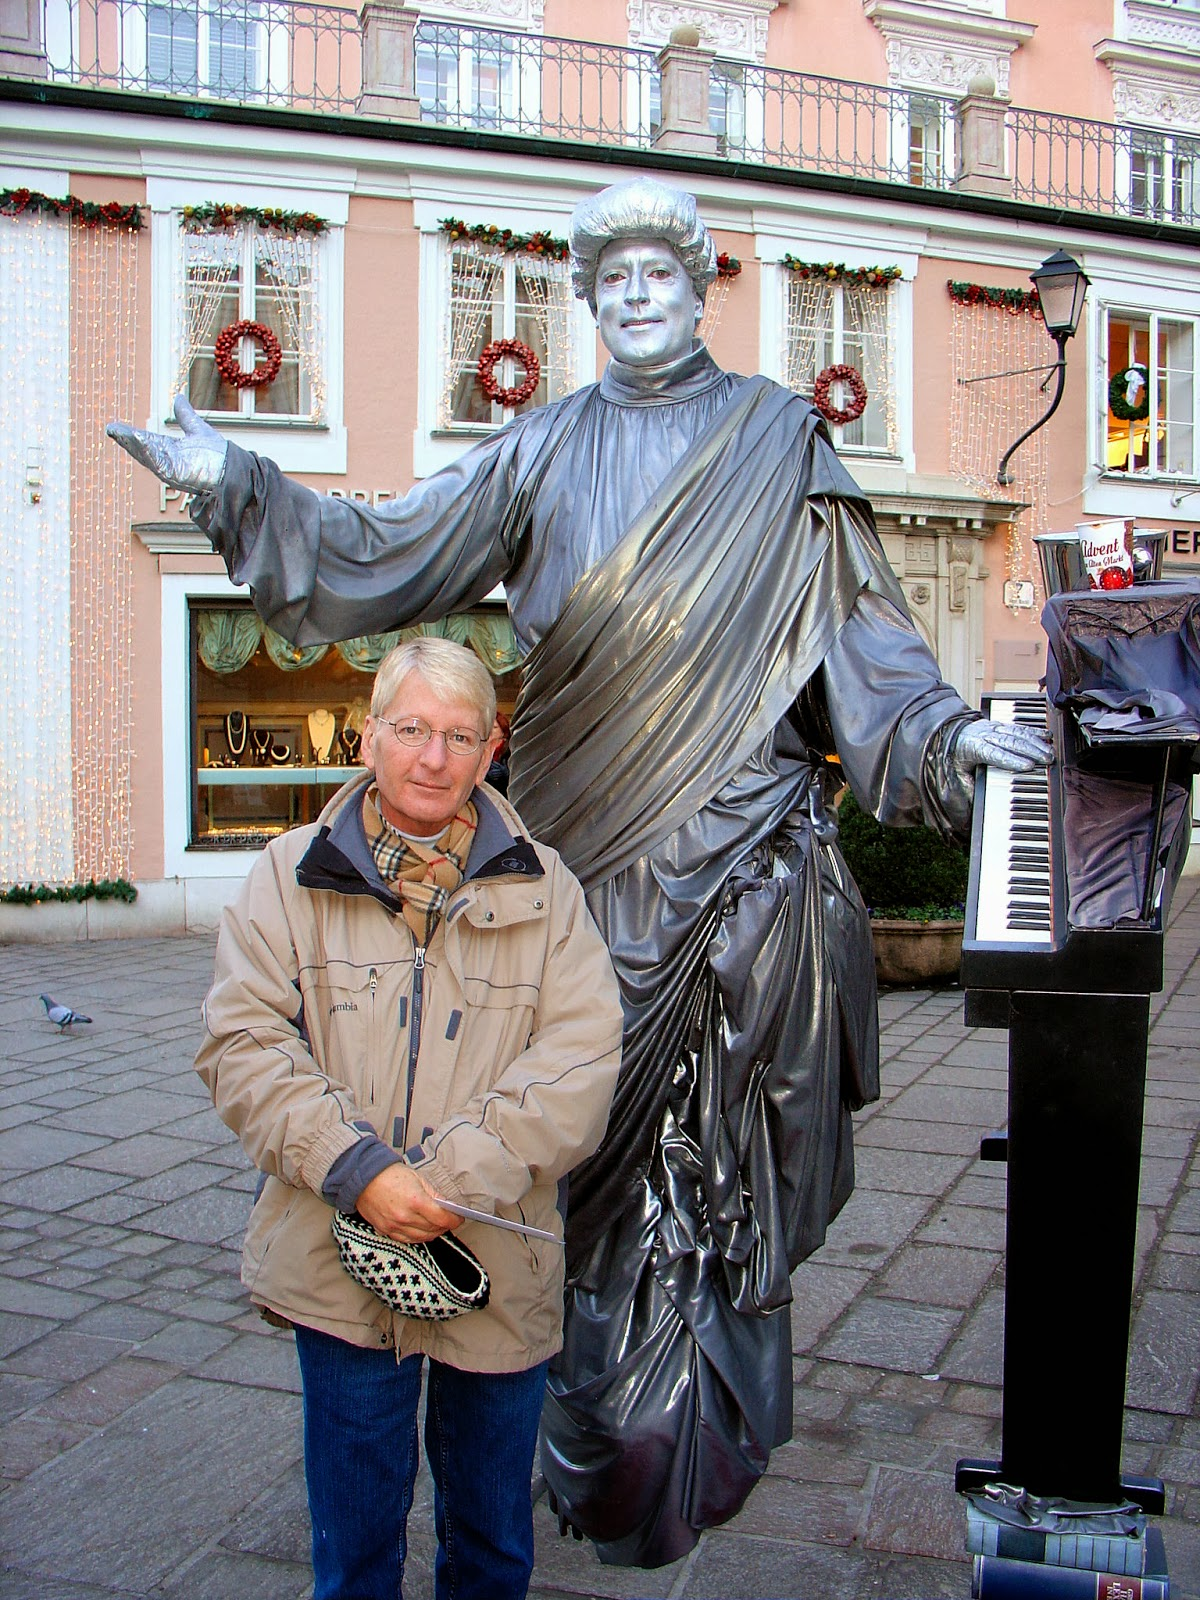 Having fun with the living statues in Salzburg. Here's Matthew with a floating Mozart?